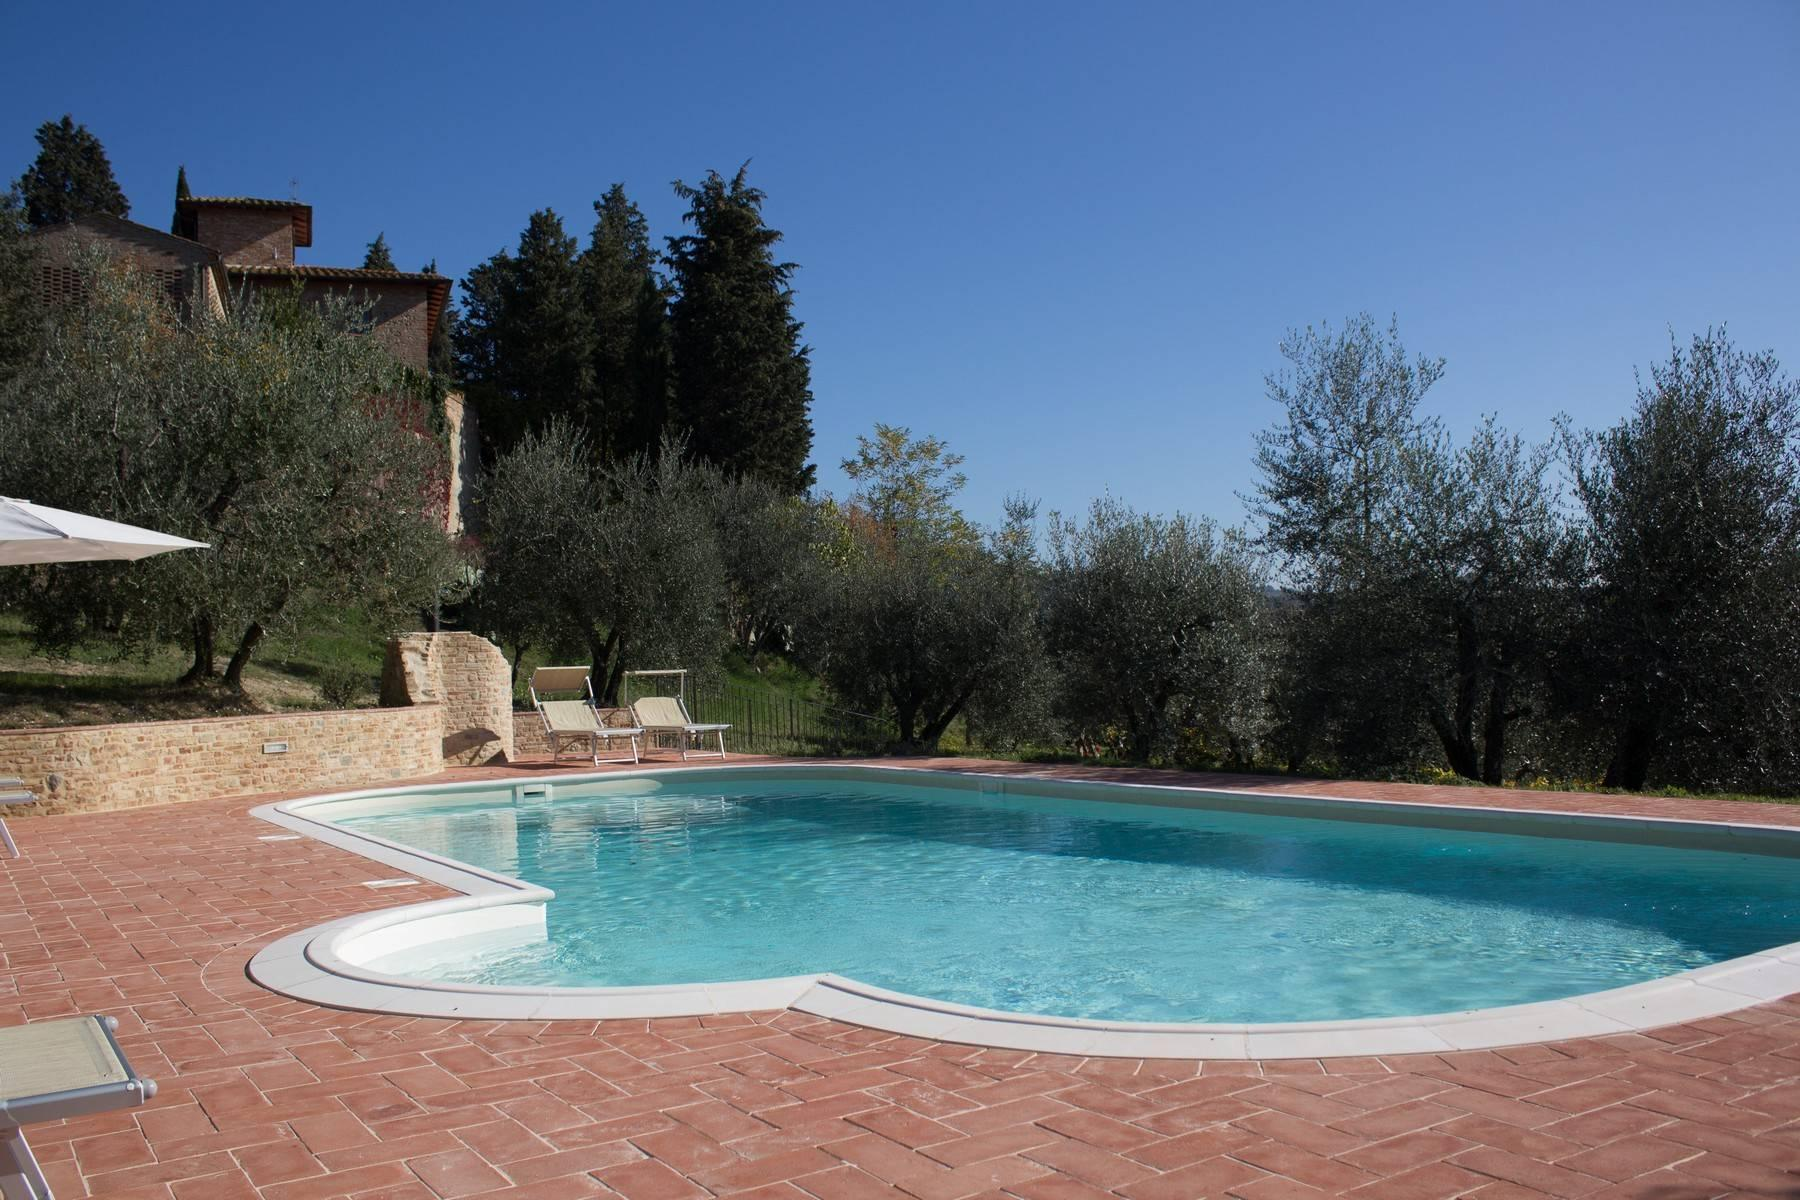 Charming country house  on the Tuscan hills - 20